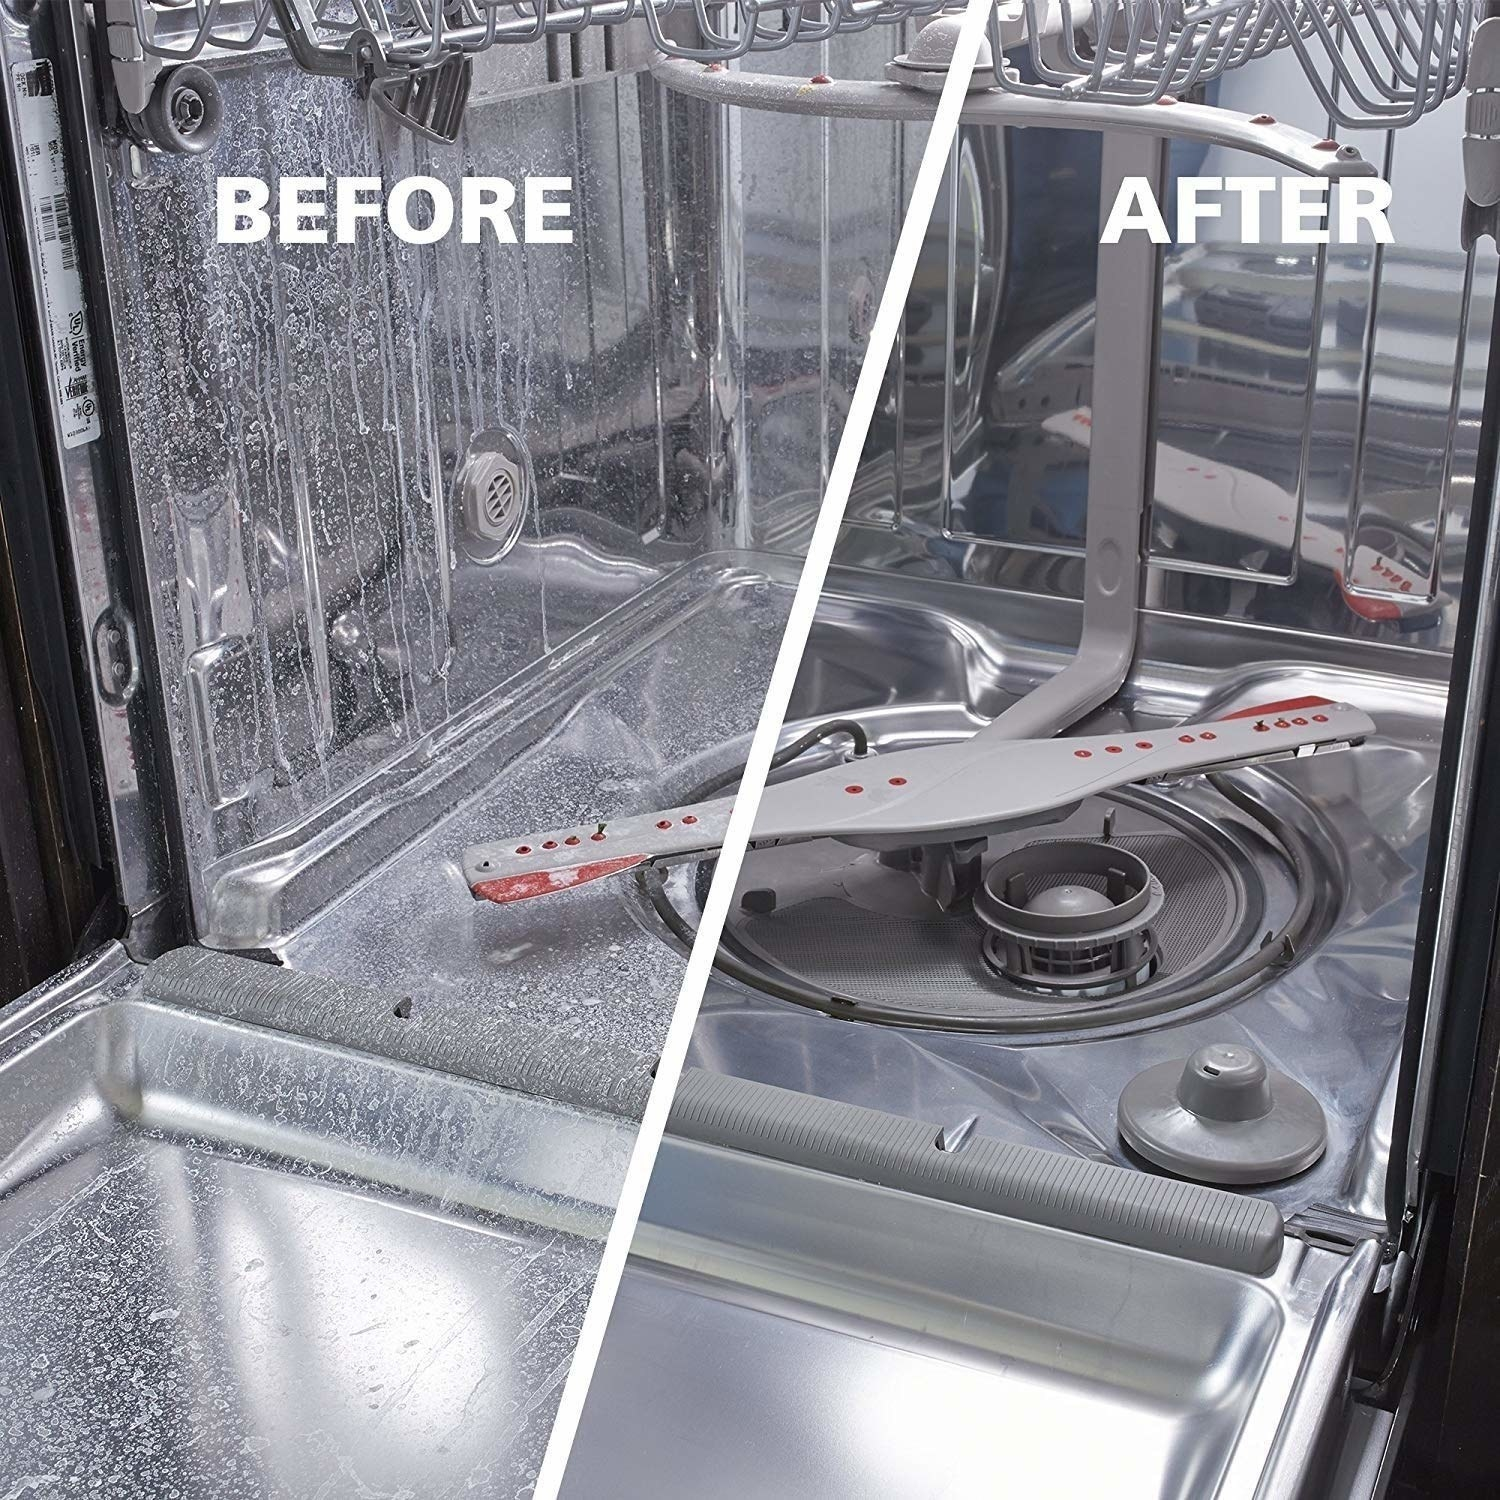 A product image of the inside of a dishwasher before (scaly and with white residue) and after (sparkling clean)